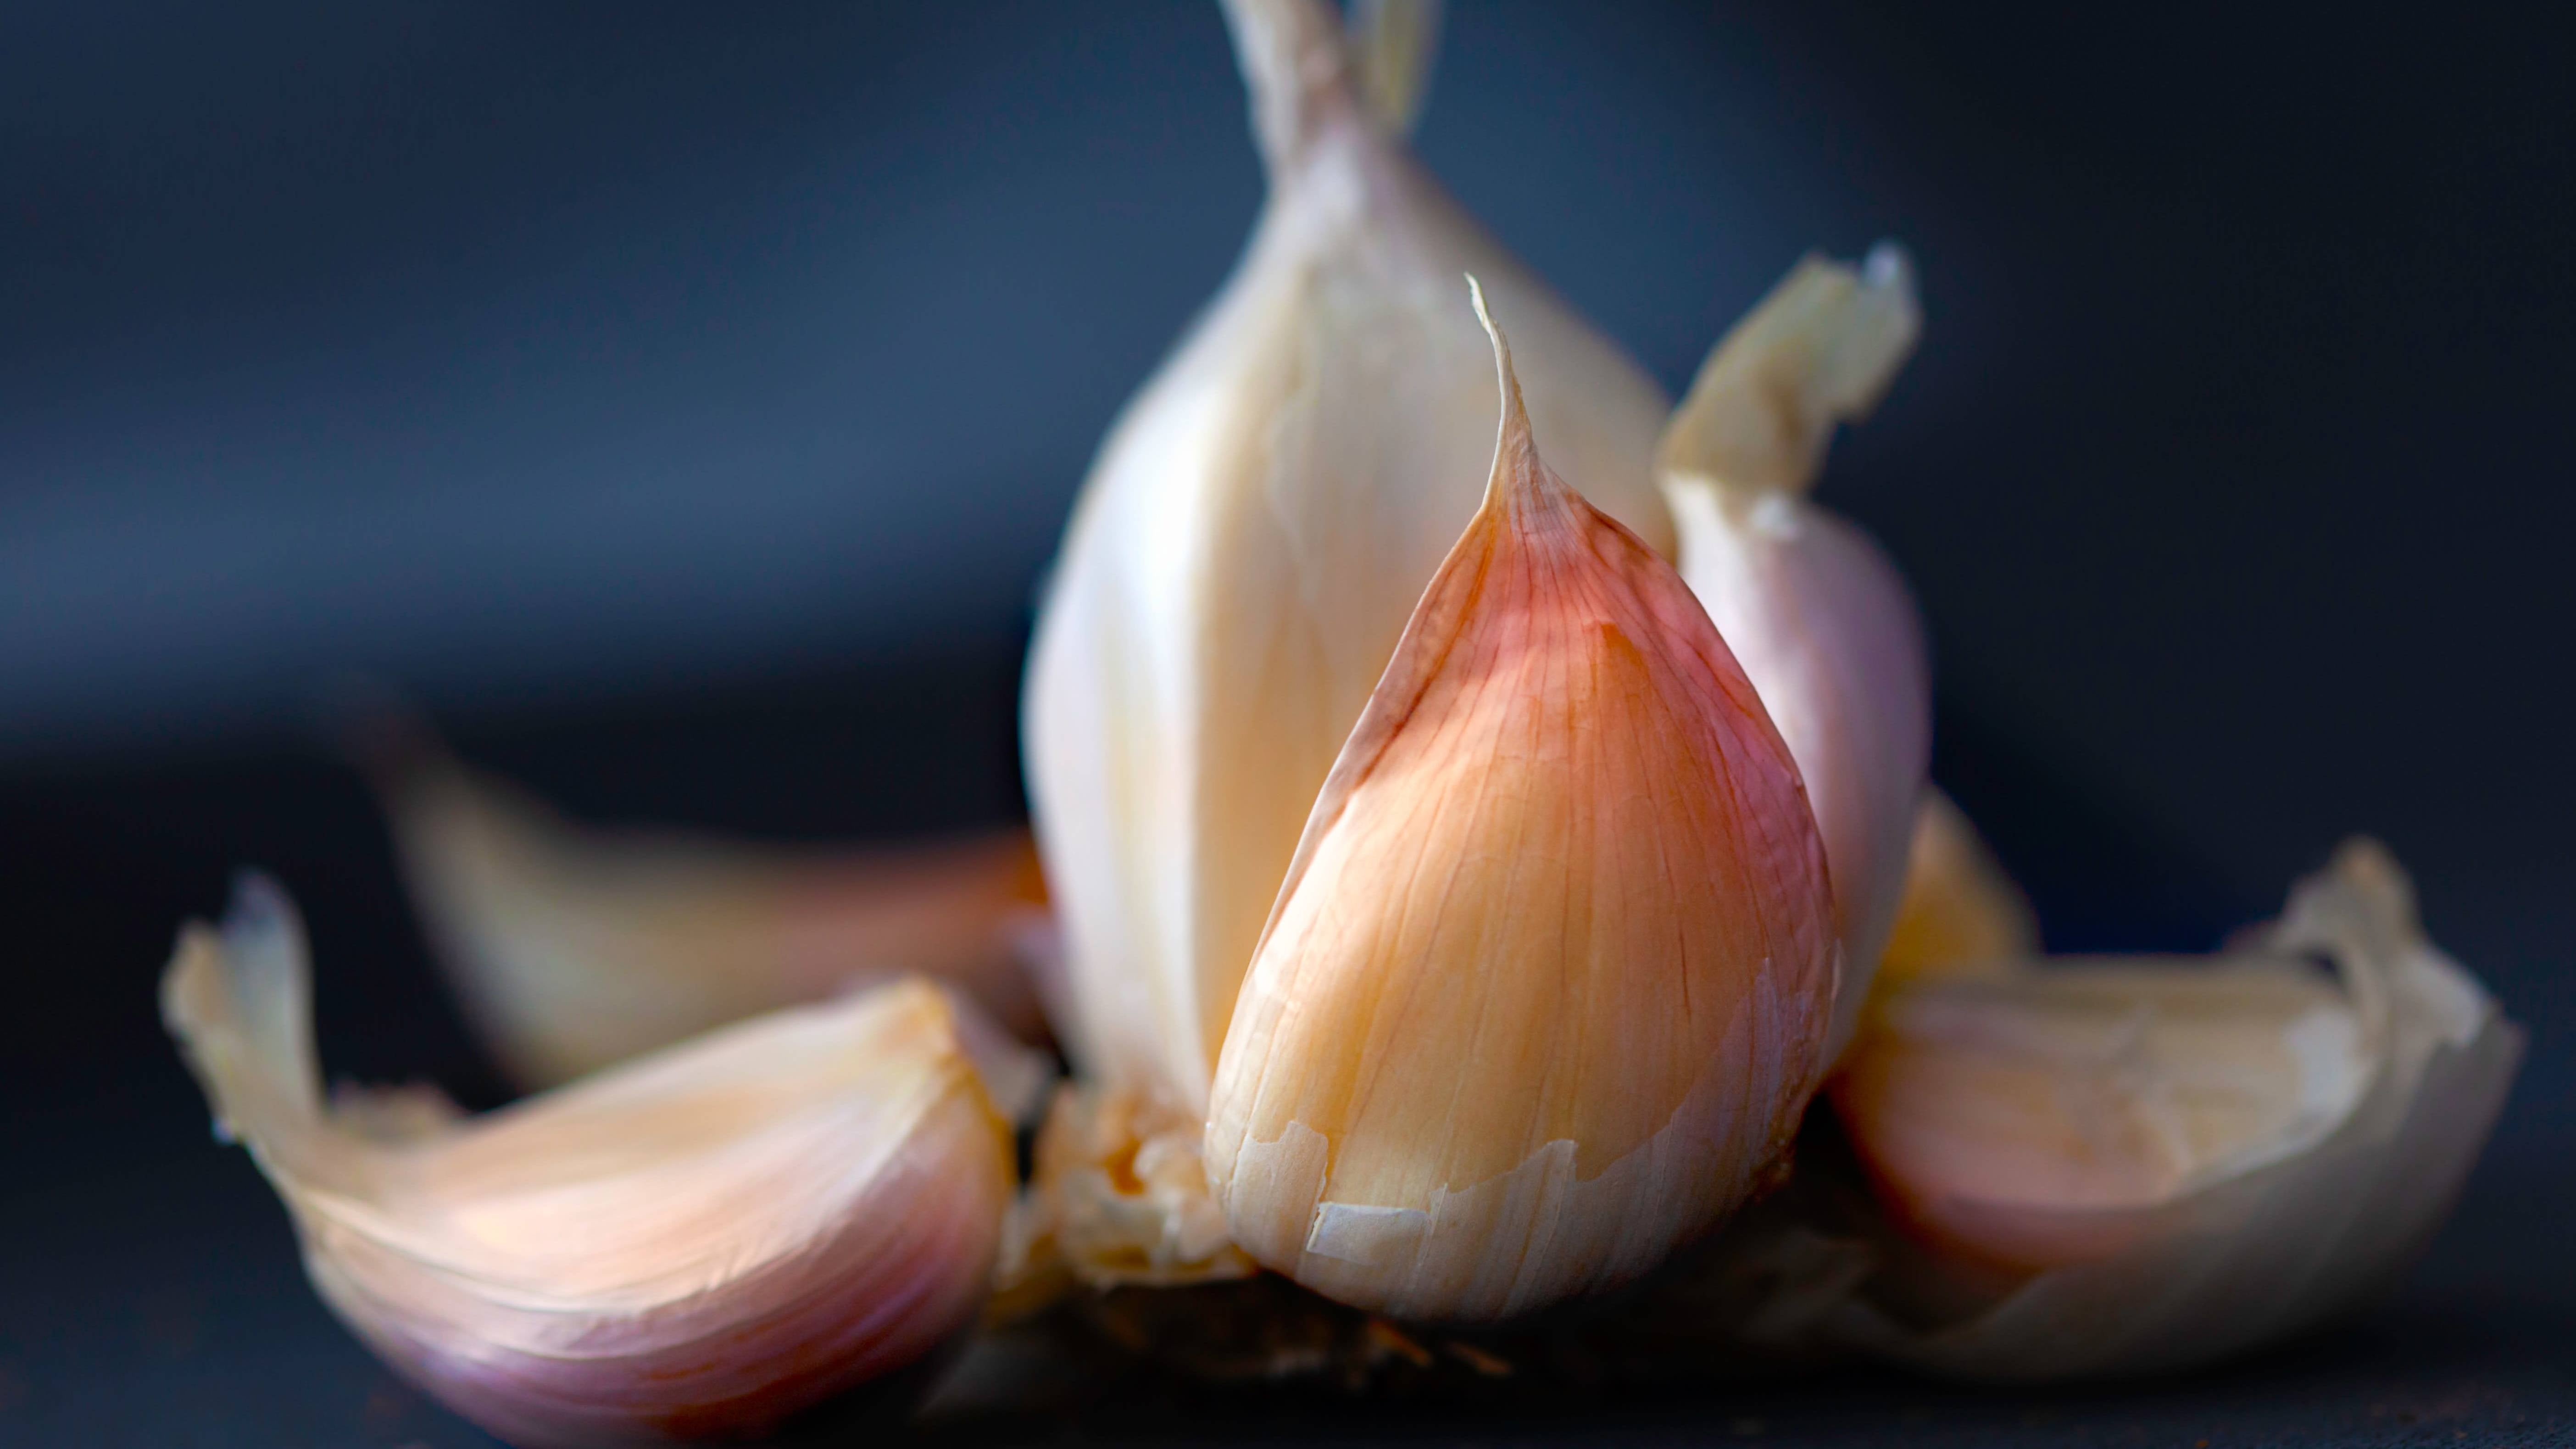 That Viral Garlic Hack Doesn't Work